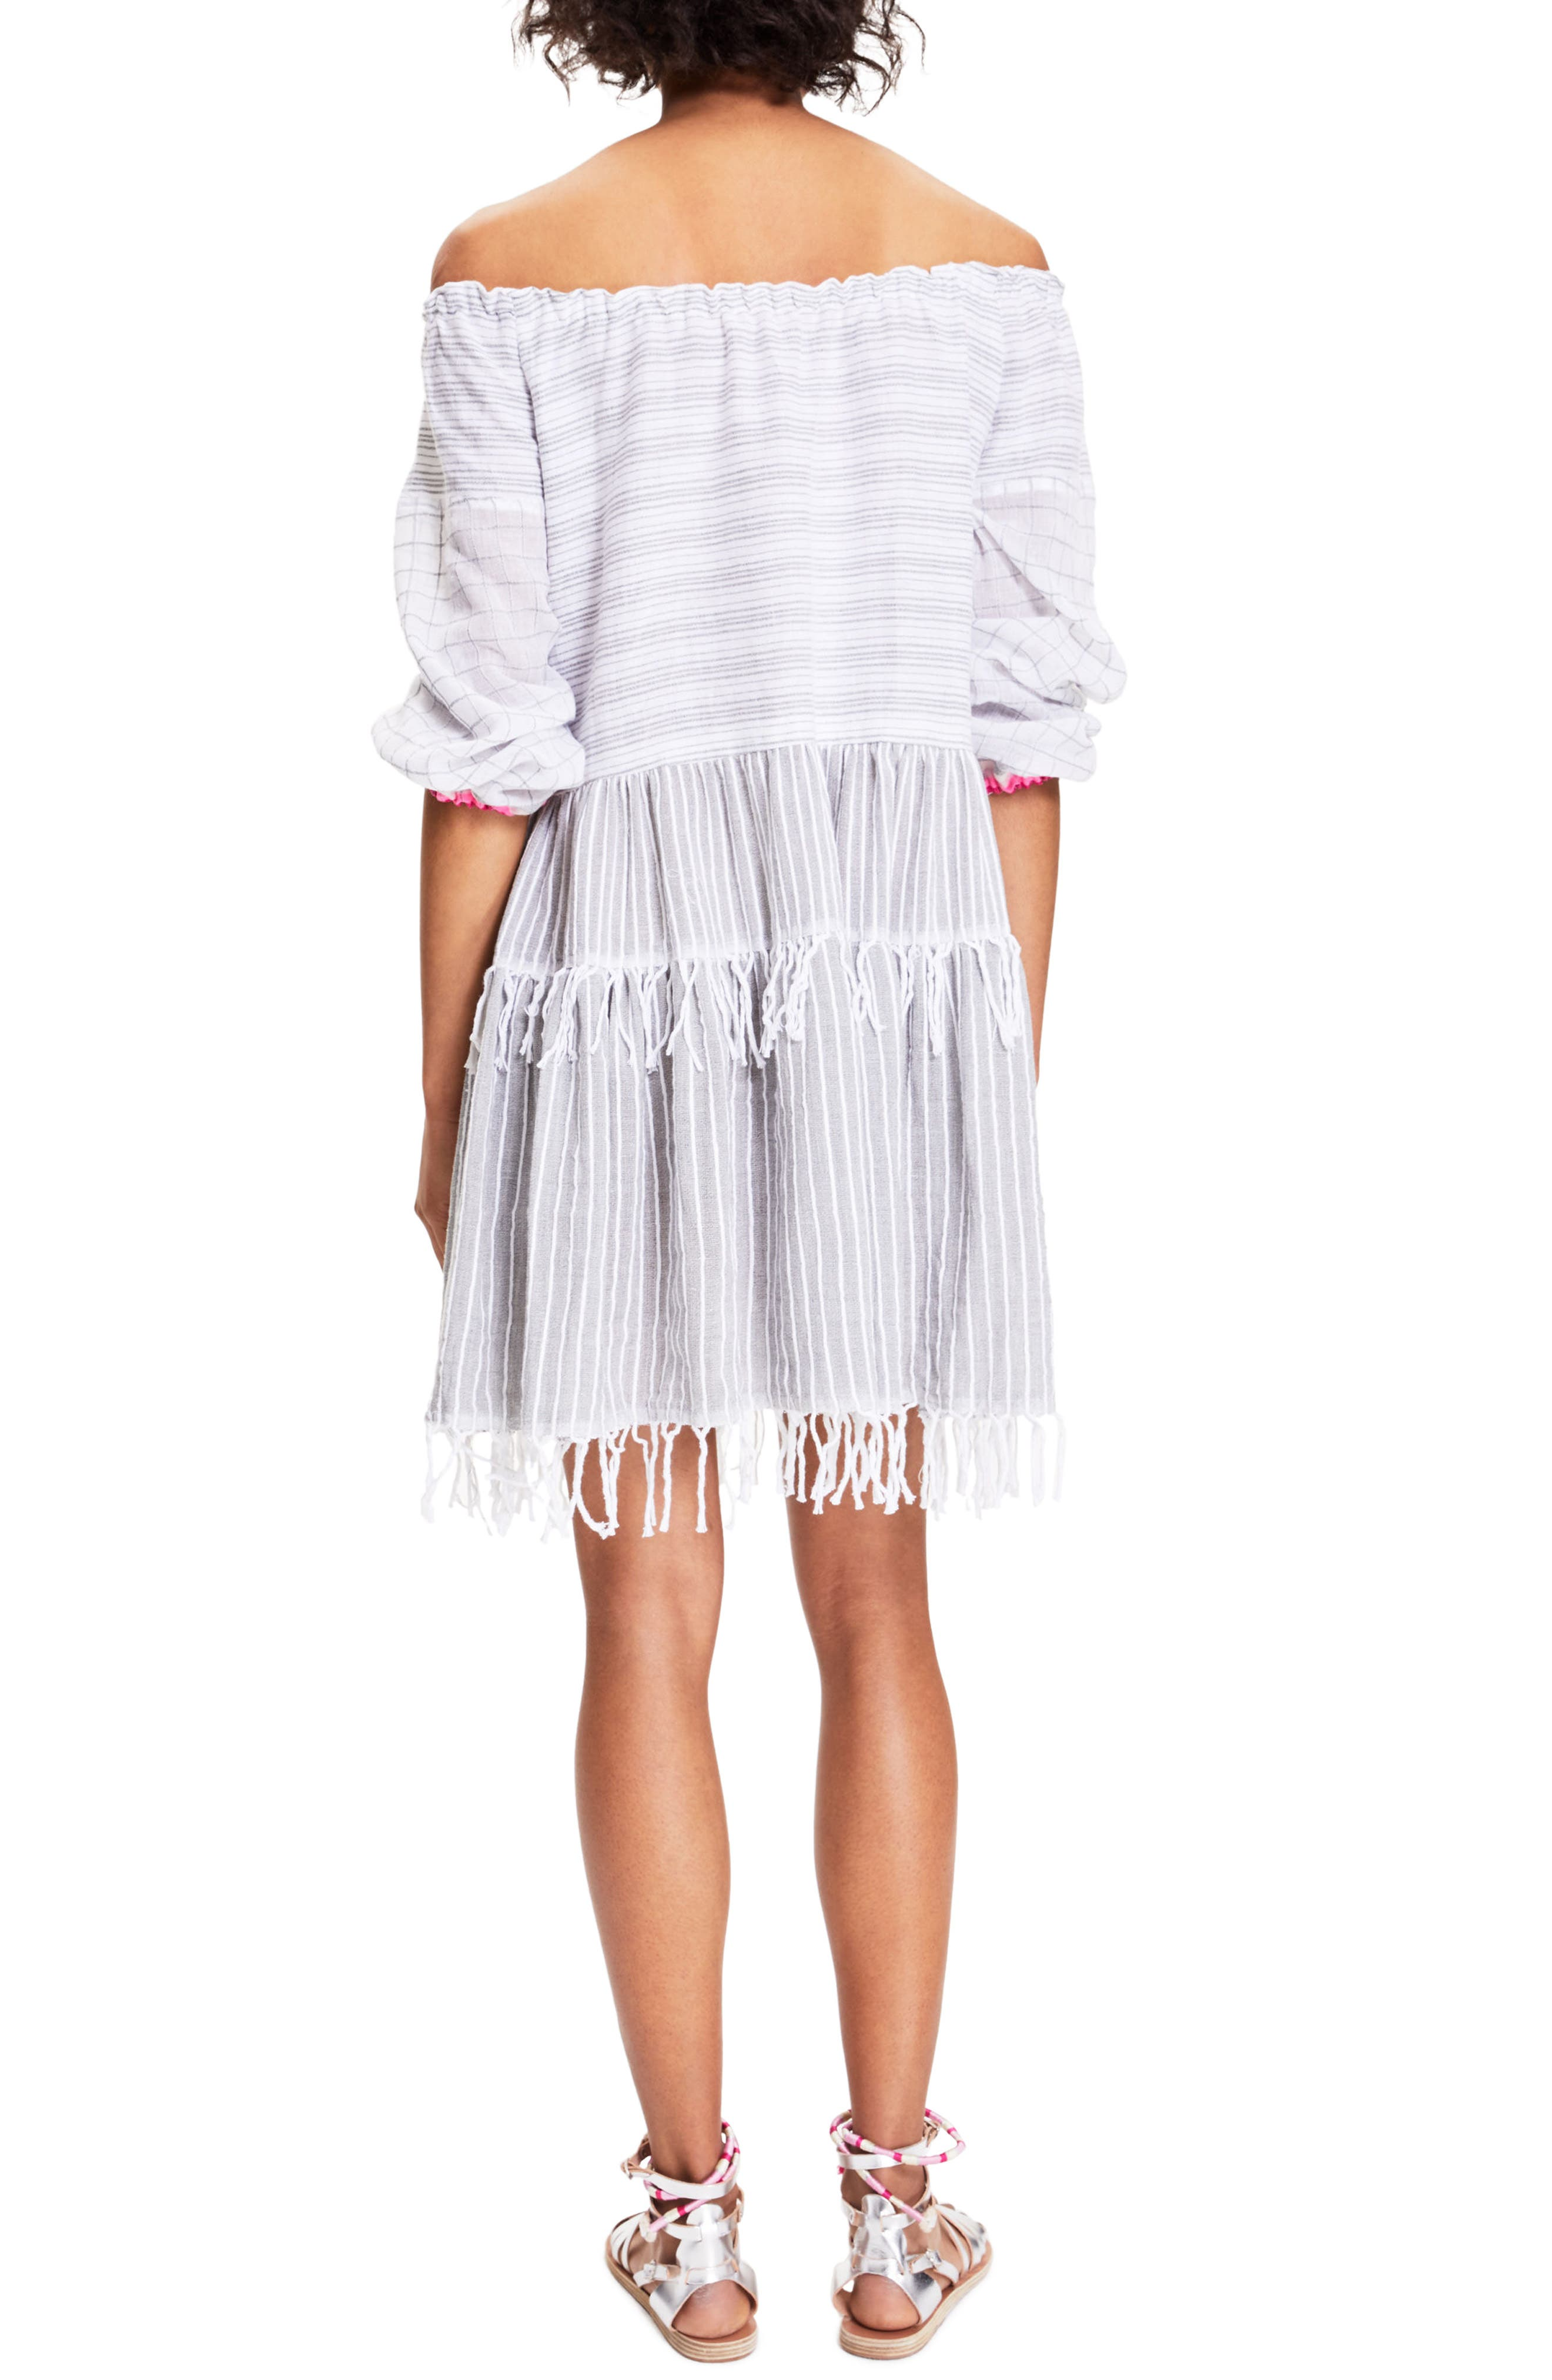 Anana Off the Shoulder Cover-Up Dress,                             Alternate thumbnail 2, color,                             100